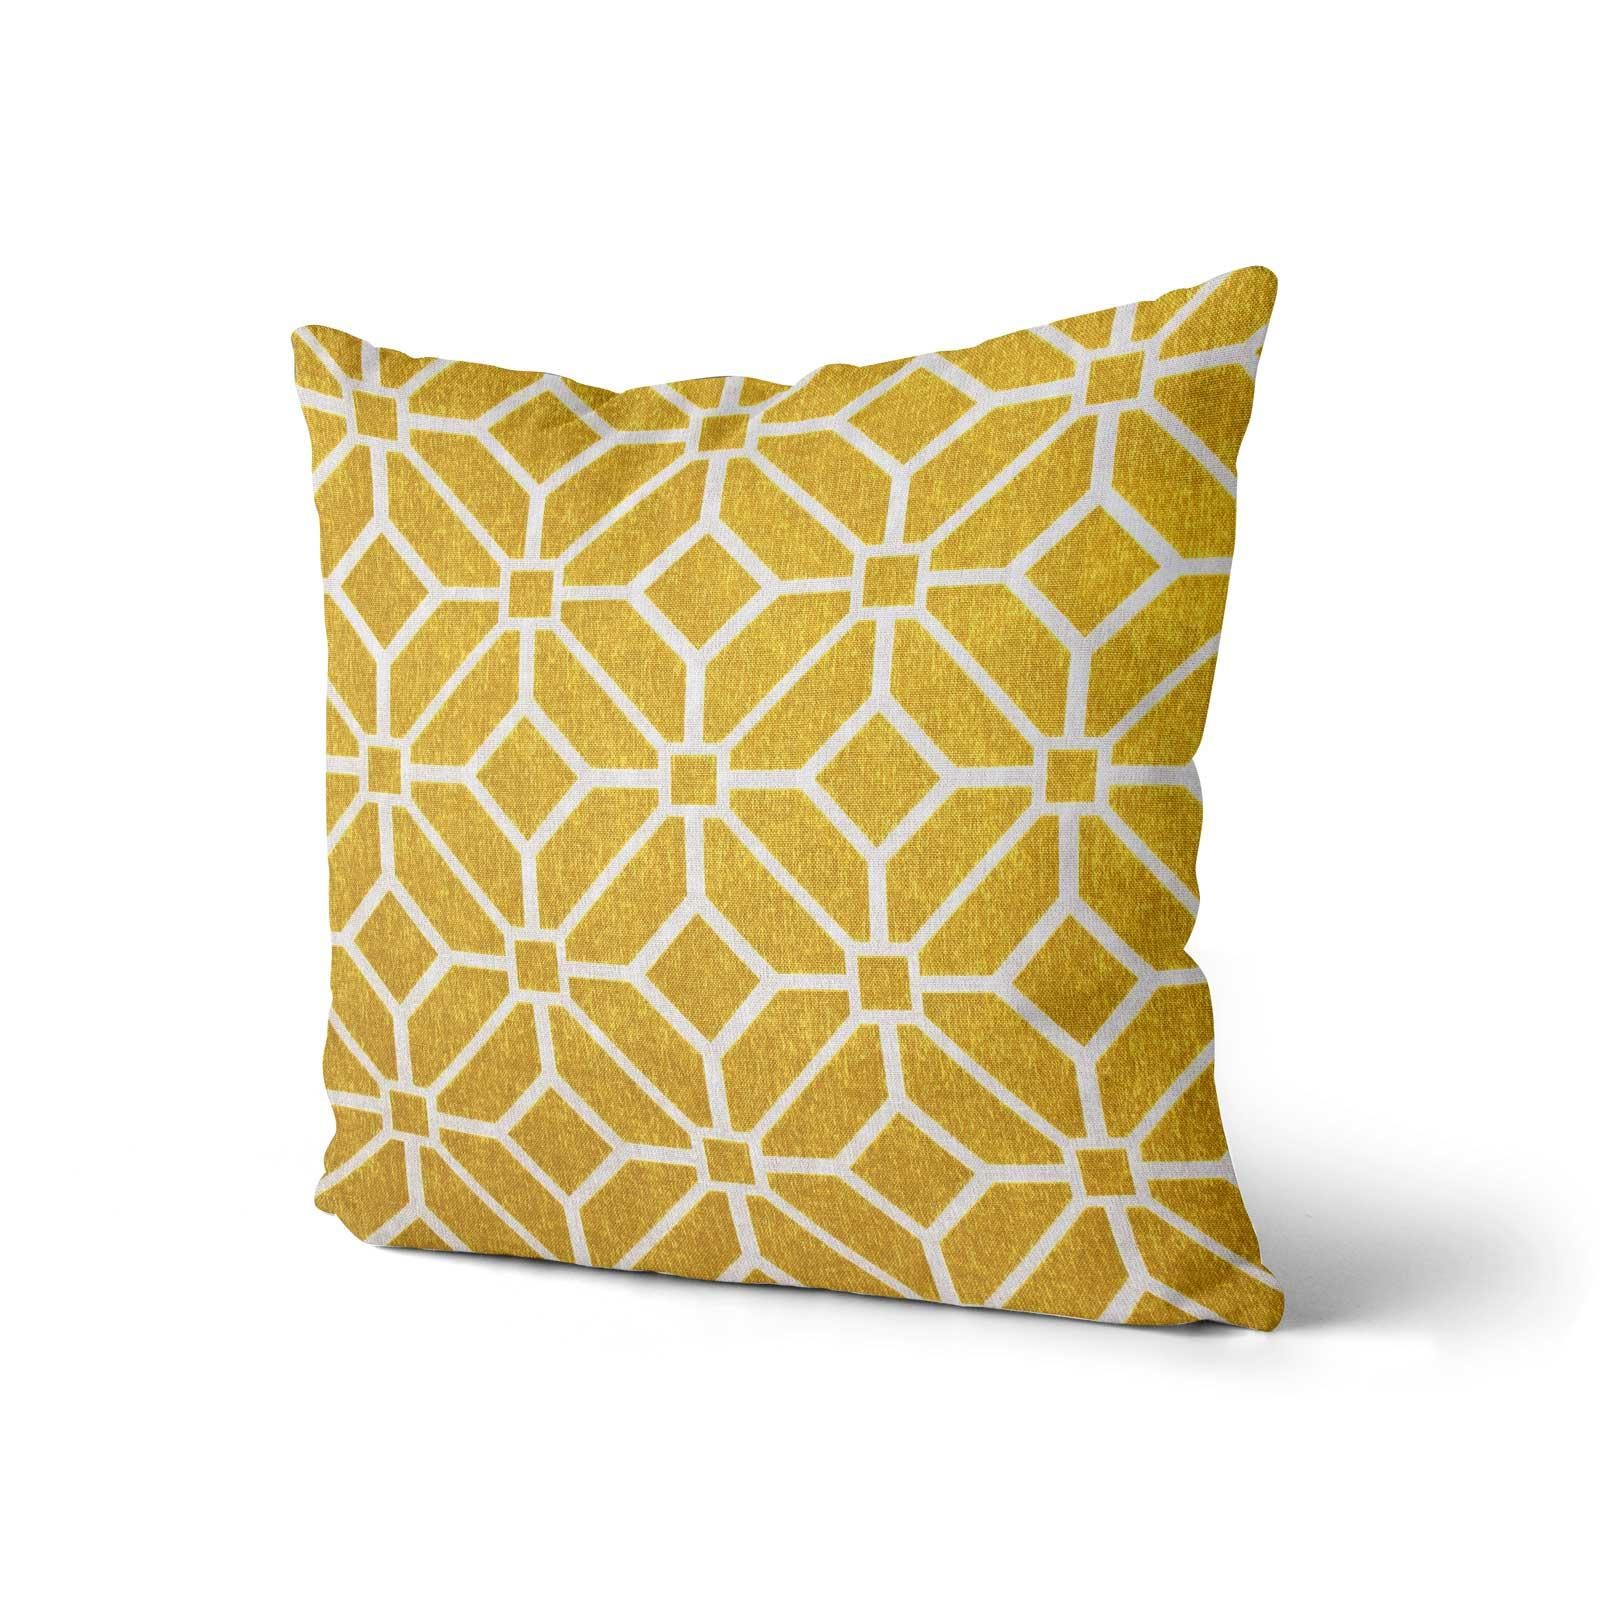 Grey-Ochre-Mustard-Cushion-Cover-Collection-17-034-18-034-Covers-Filled-Cushions thumbnail 95